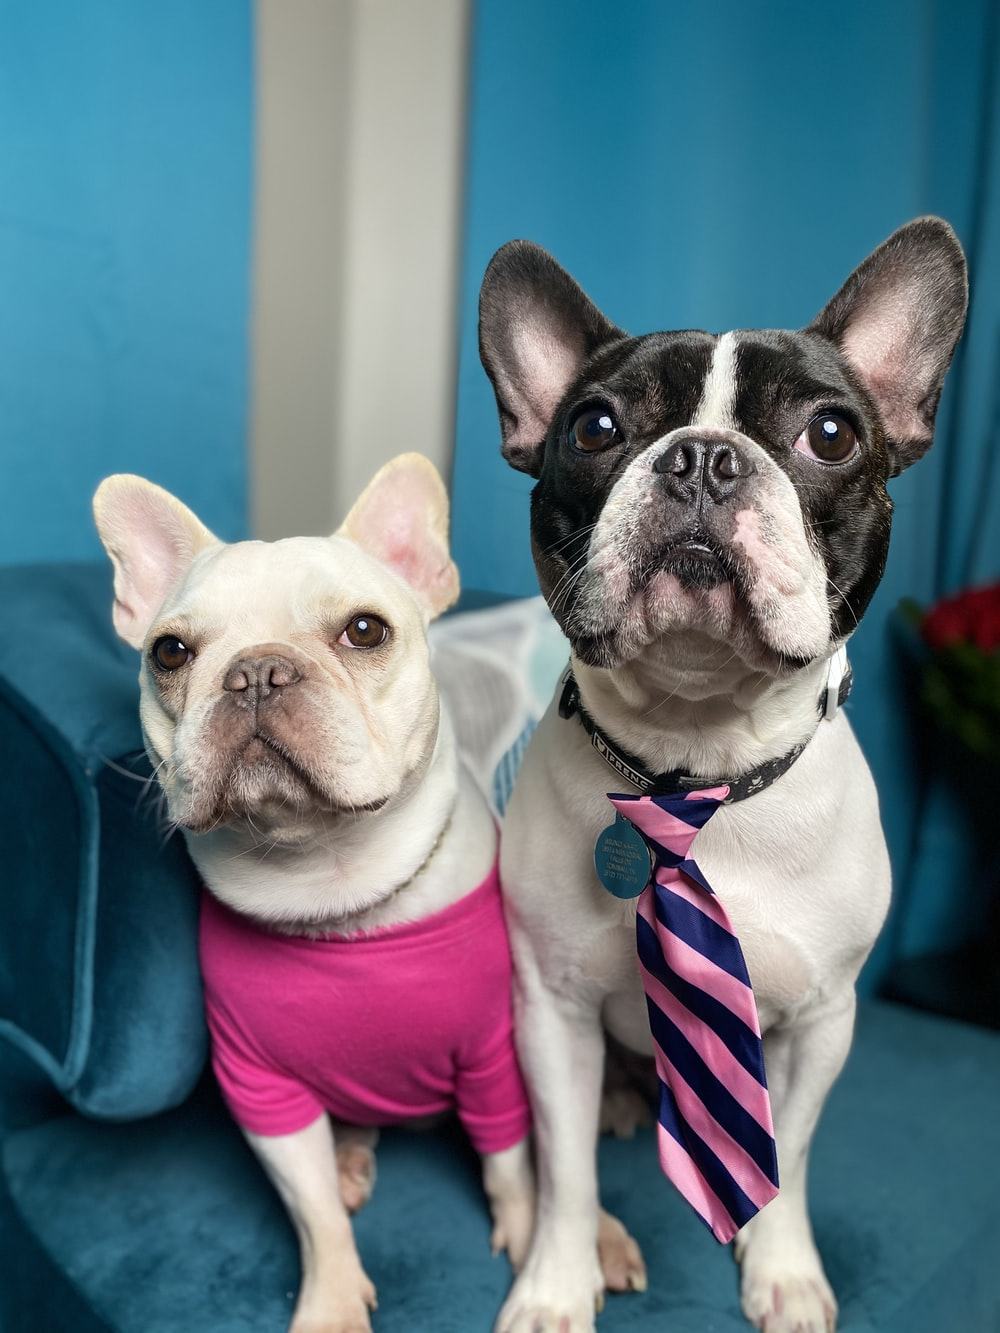 white and black french bulldog wearing pink and white striped shirt